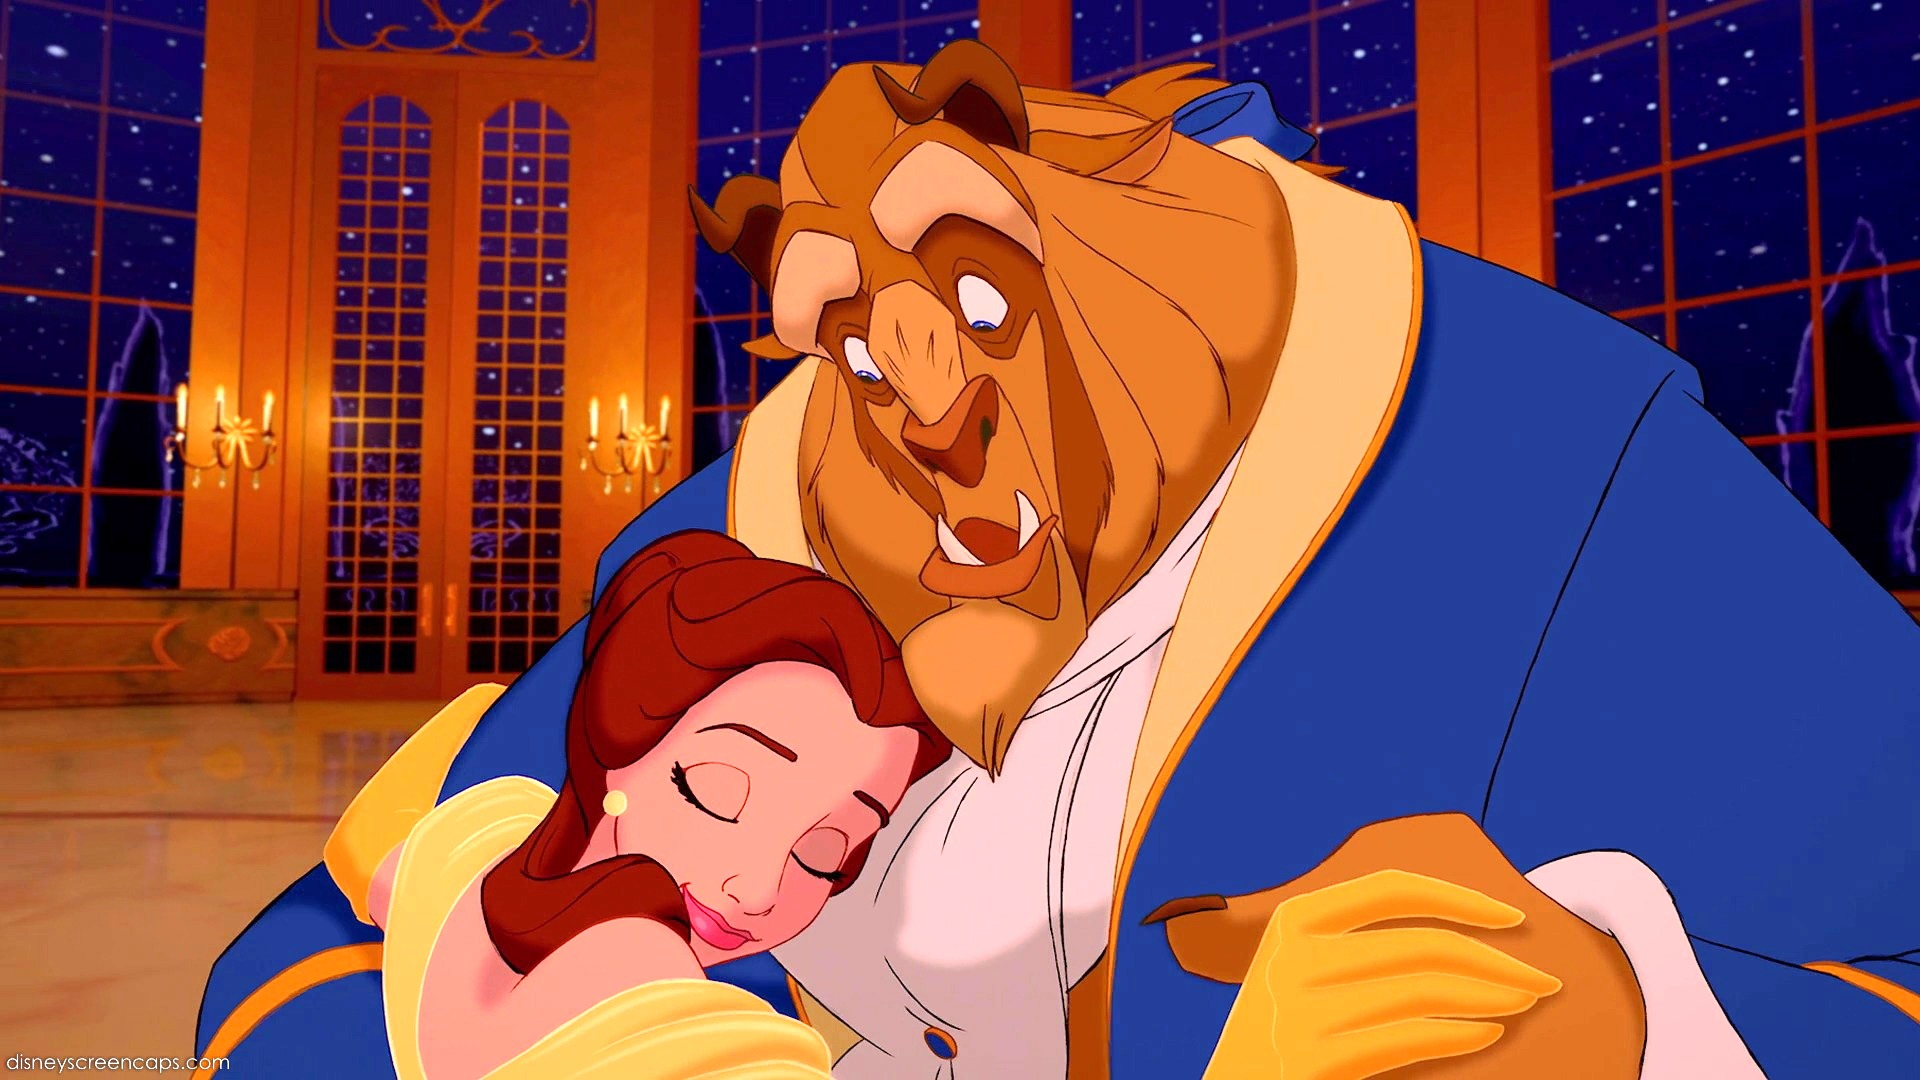 https://i0.wp.com/images6.fanpop.com/image/photos/32400000/if-you-give-trust-you-will-get-trust-beauty-and-the-beast-32448279-1920-1080.jpg